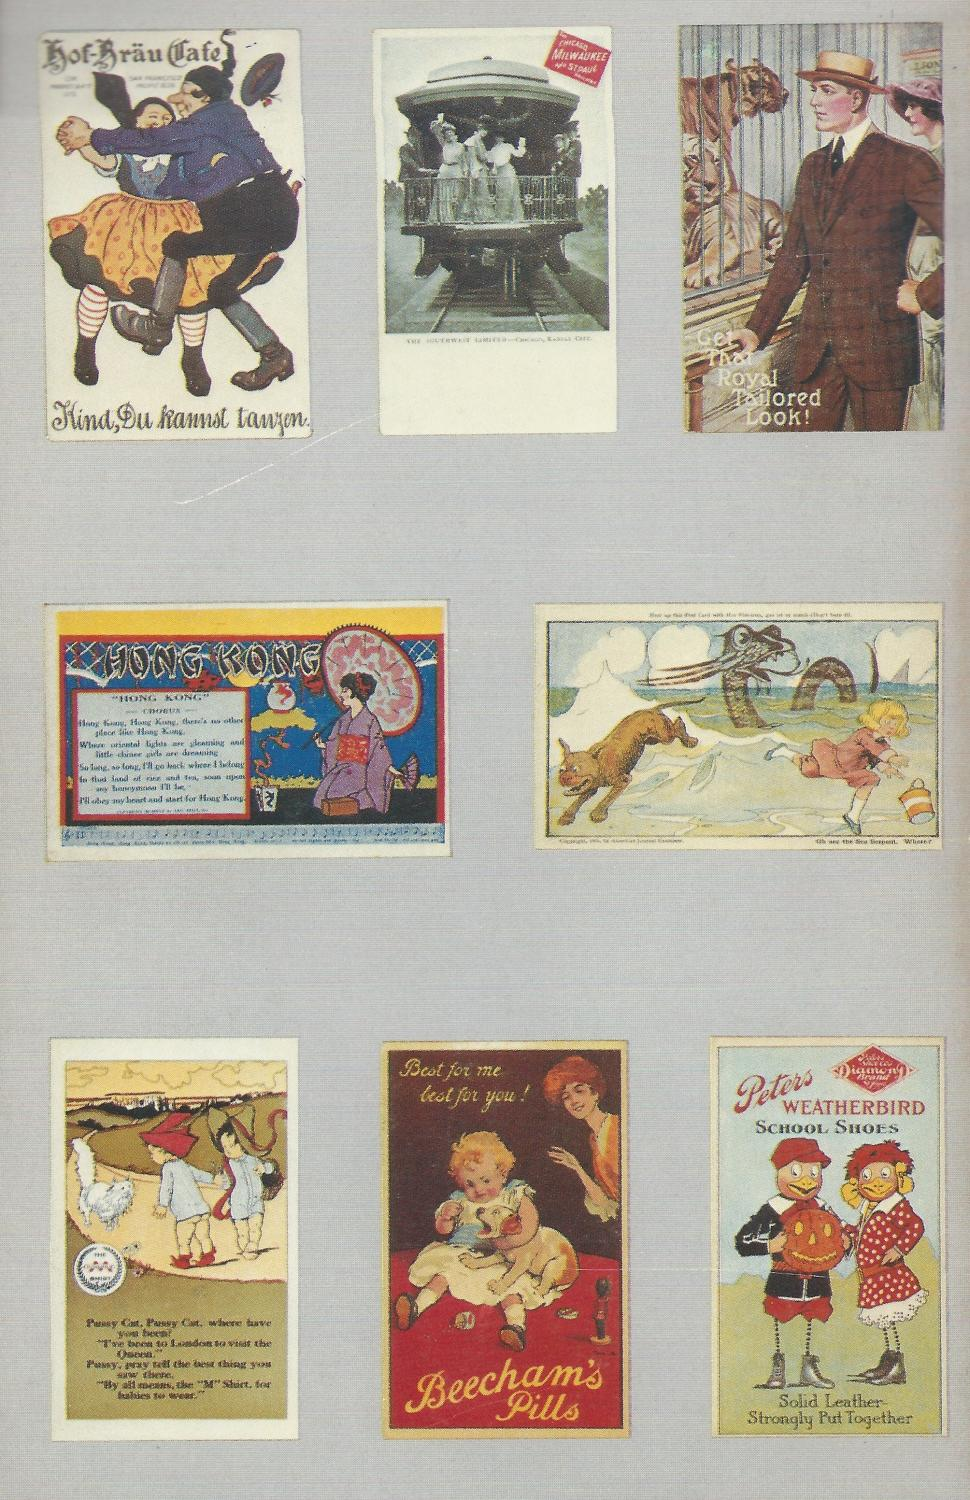 American Advertising Postcards: Sets and